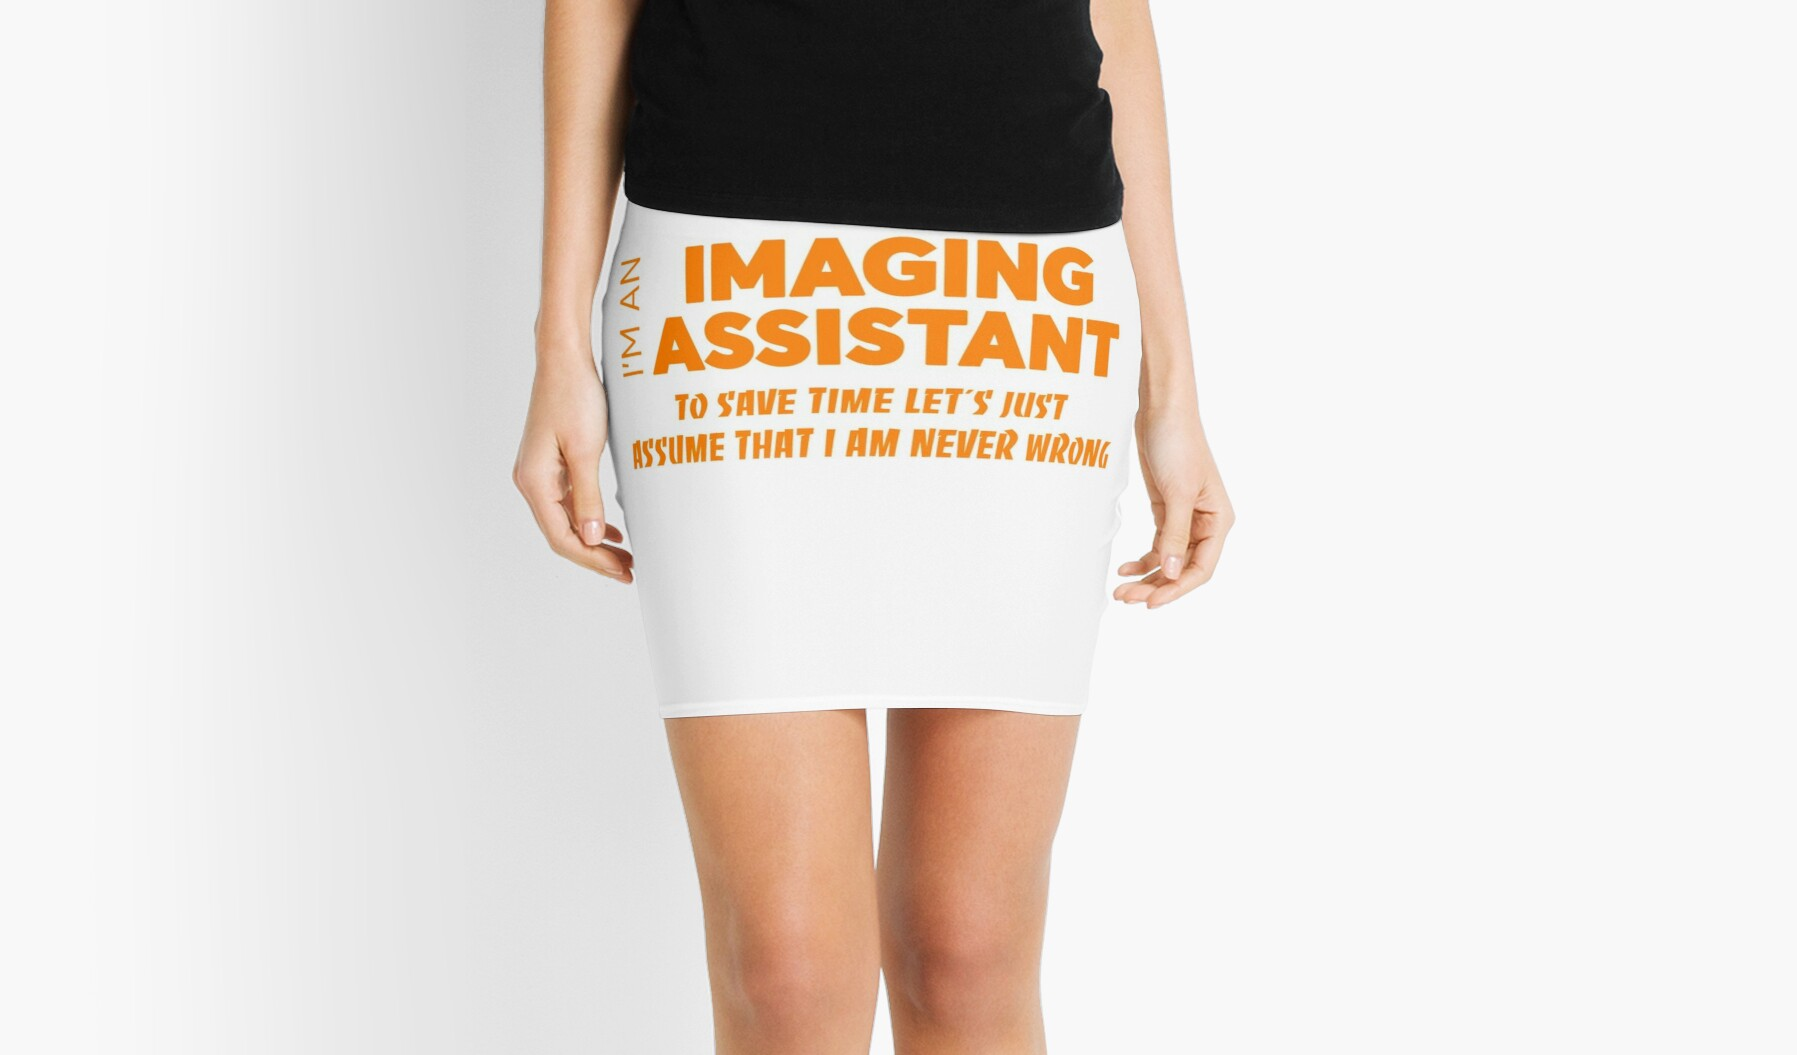 IMAGING ASSISTANT by Charlotteaudio